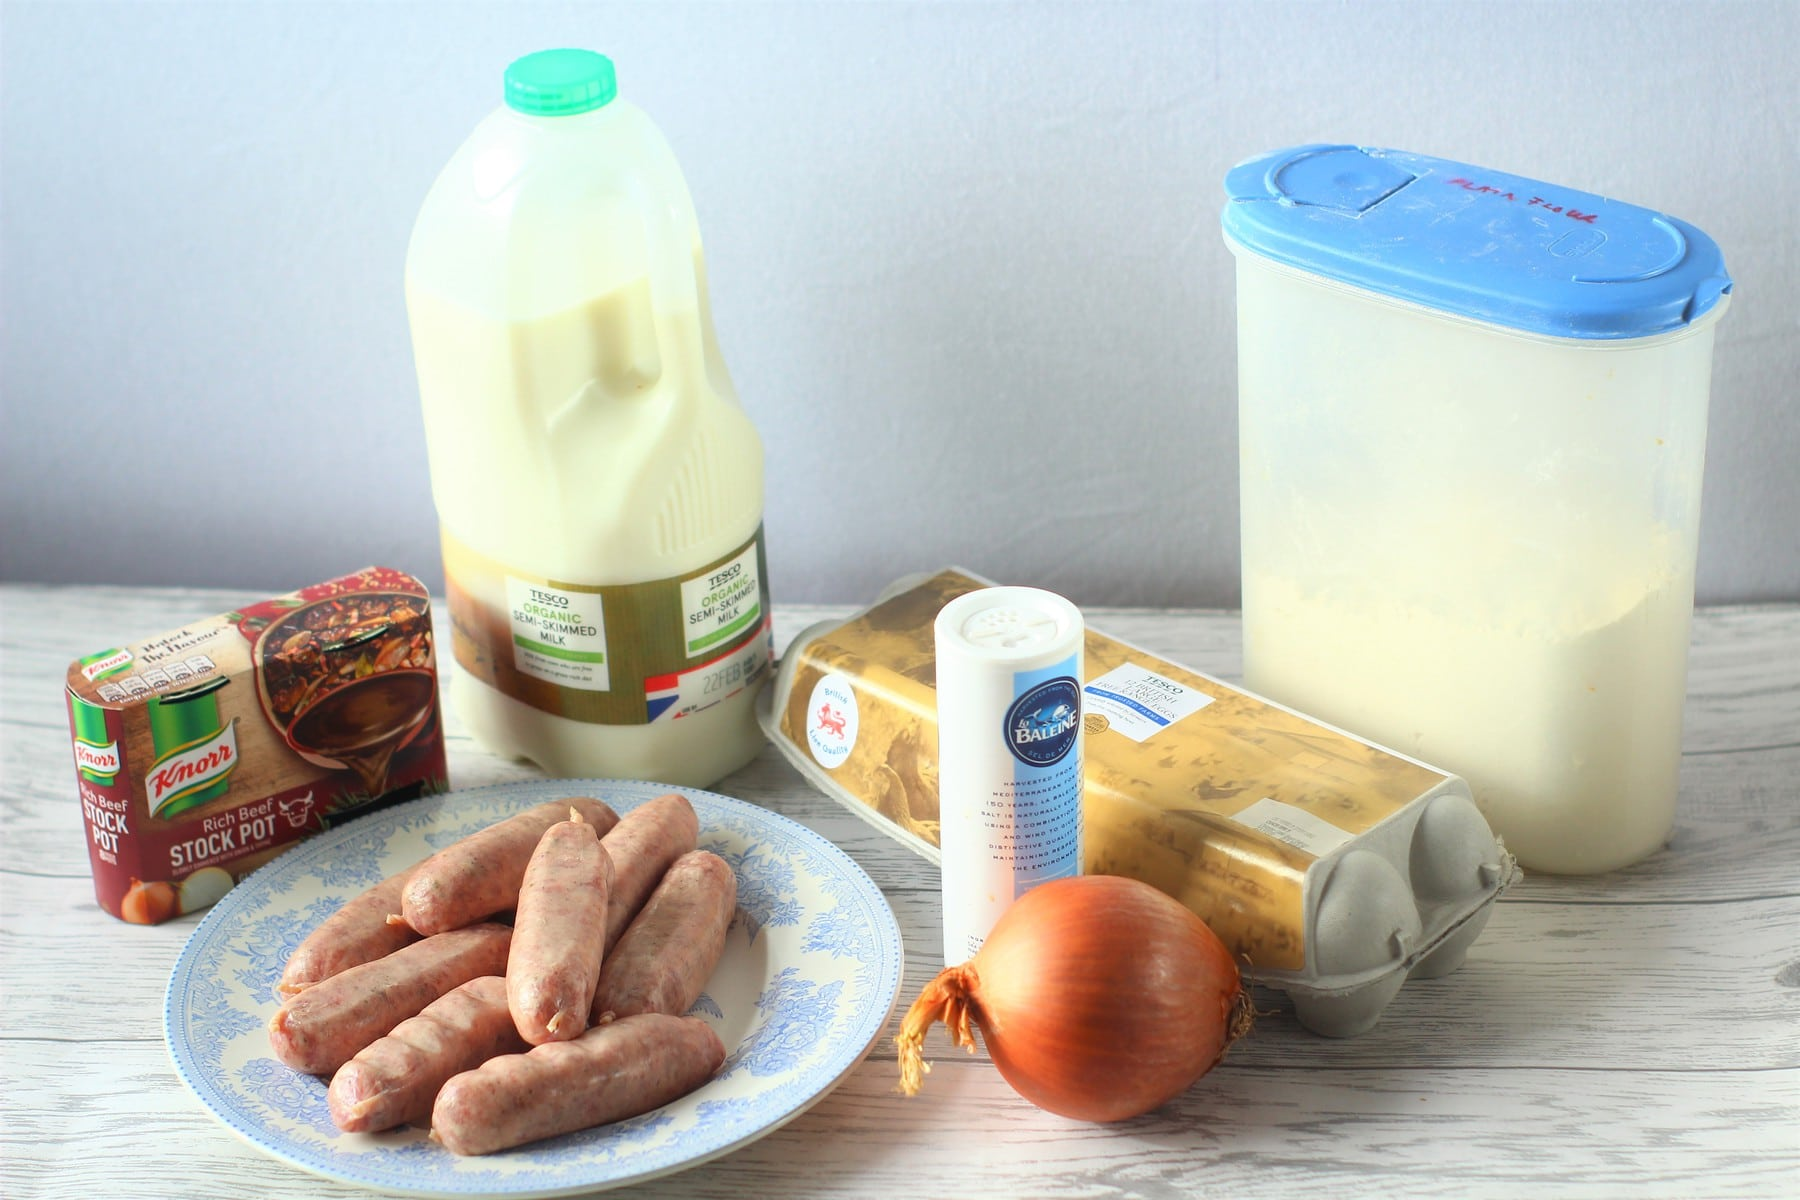 sausages on a plate, onion, salt, stock pots, eggs, flour, milk